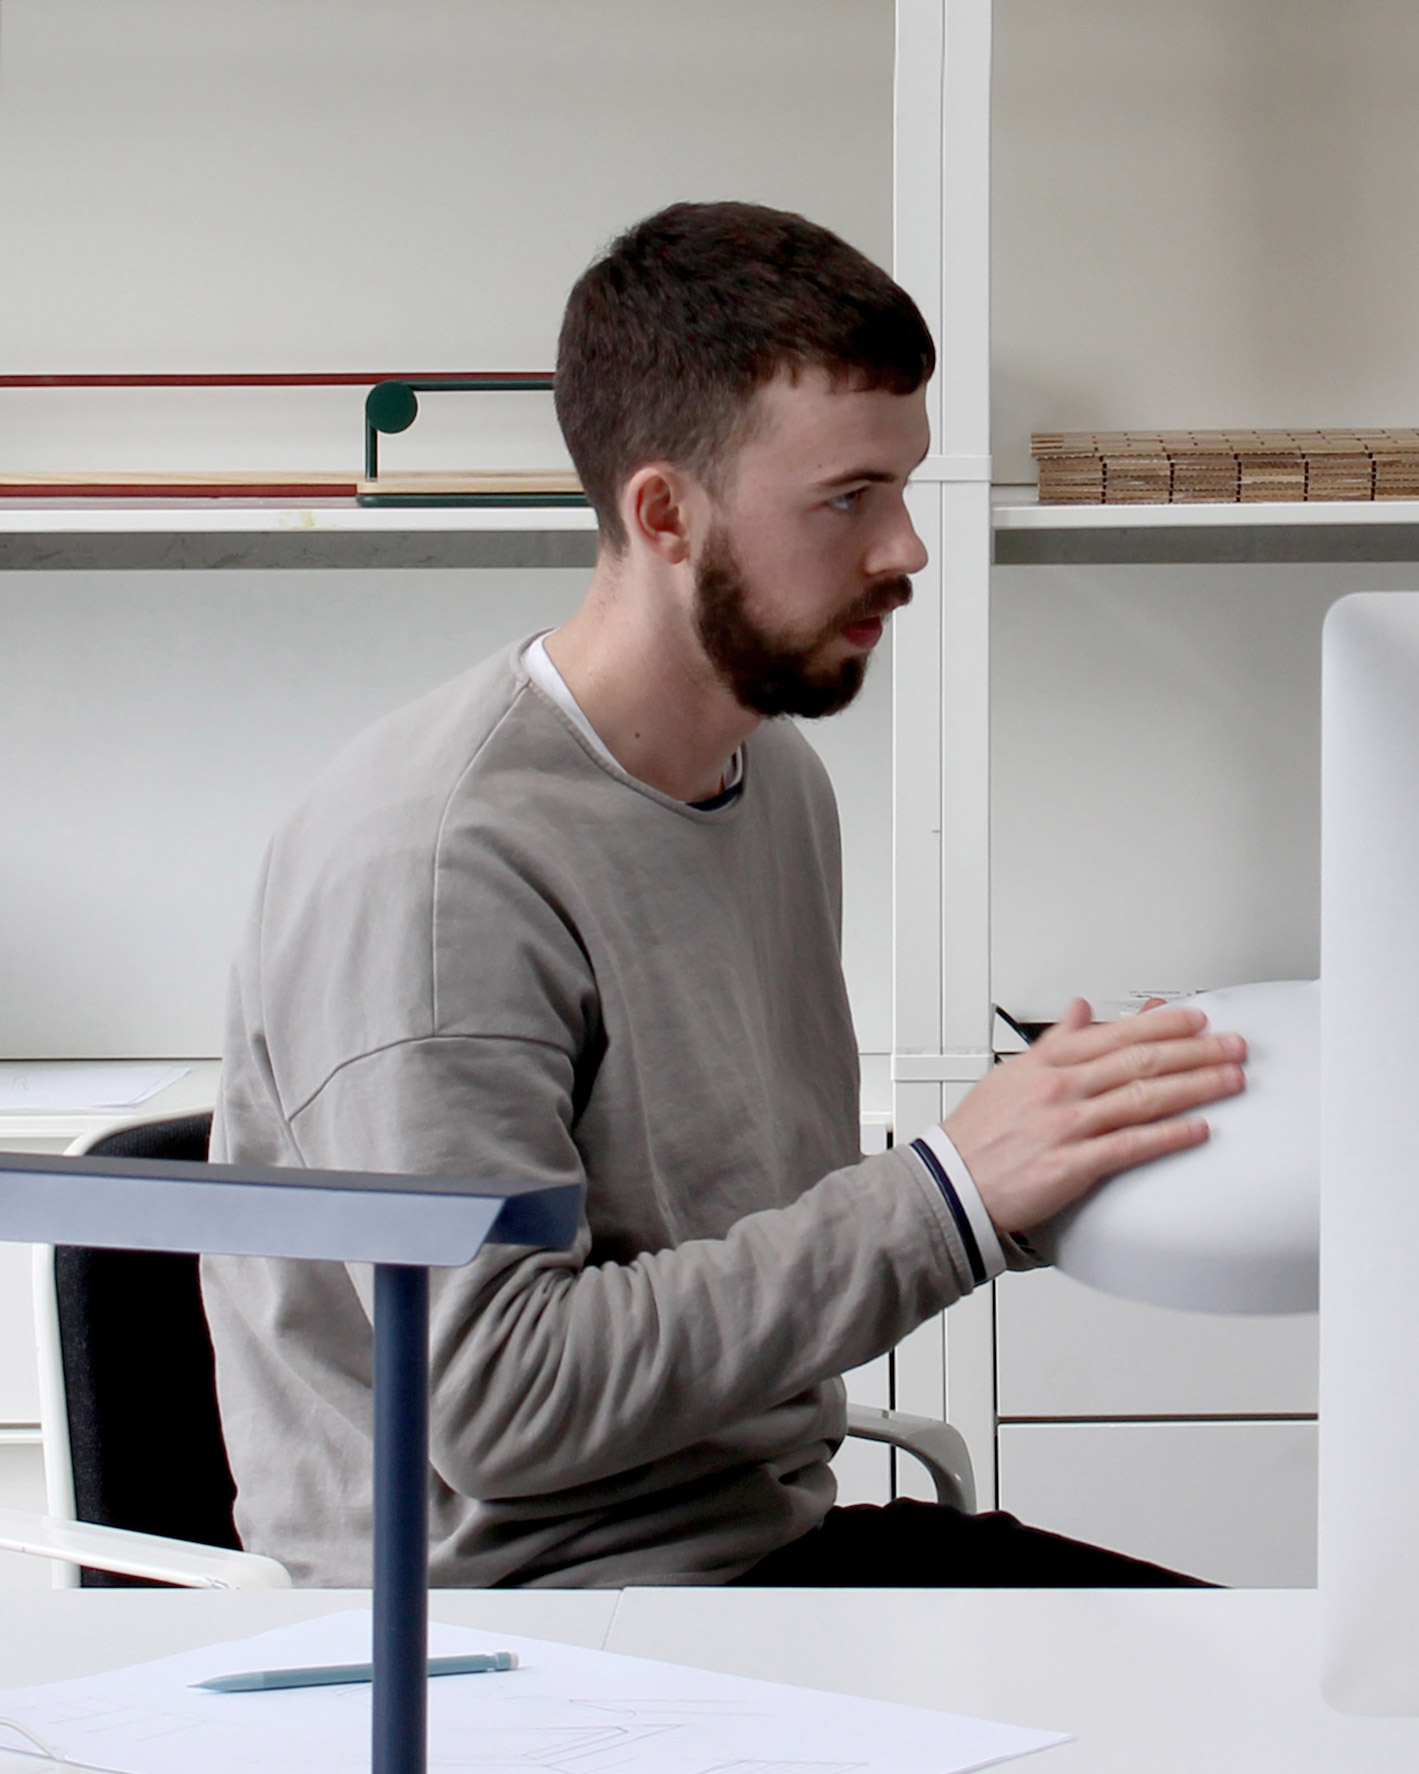 Designed By Emile Jones - Originally trained as a bespoke furniture maker, Emile now works over a range of design disciplines across a number of platforms.The basis and approach for his work stems from an understanding for materials, manufacturing, brand and retail, following the product from concept to consumer. Resulting is simple, innovative and honest design, with a focus on every element down to the last detail, and above all useful.